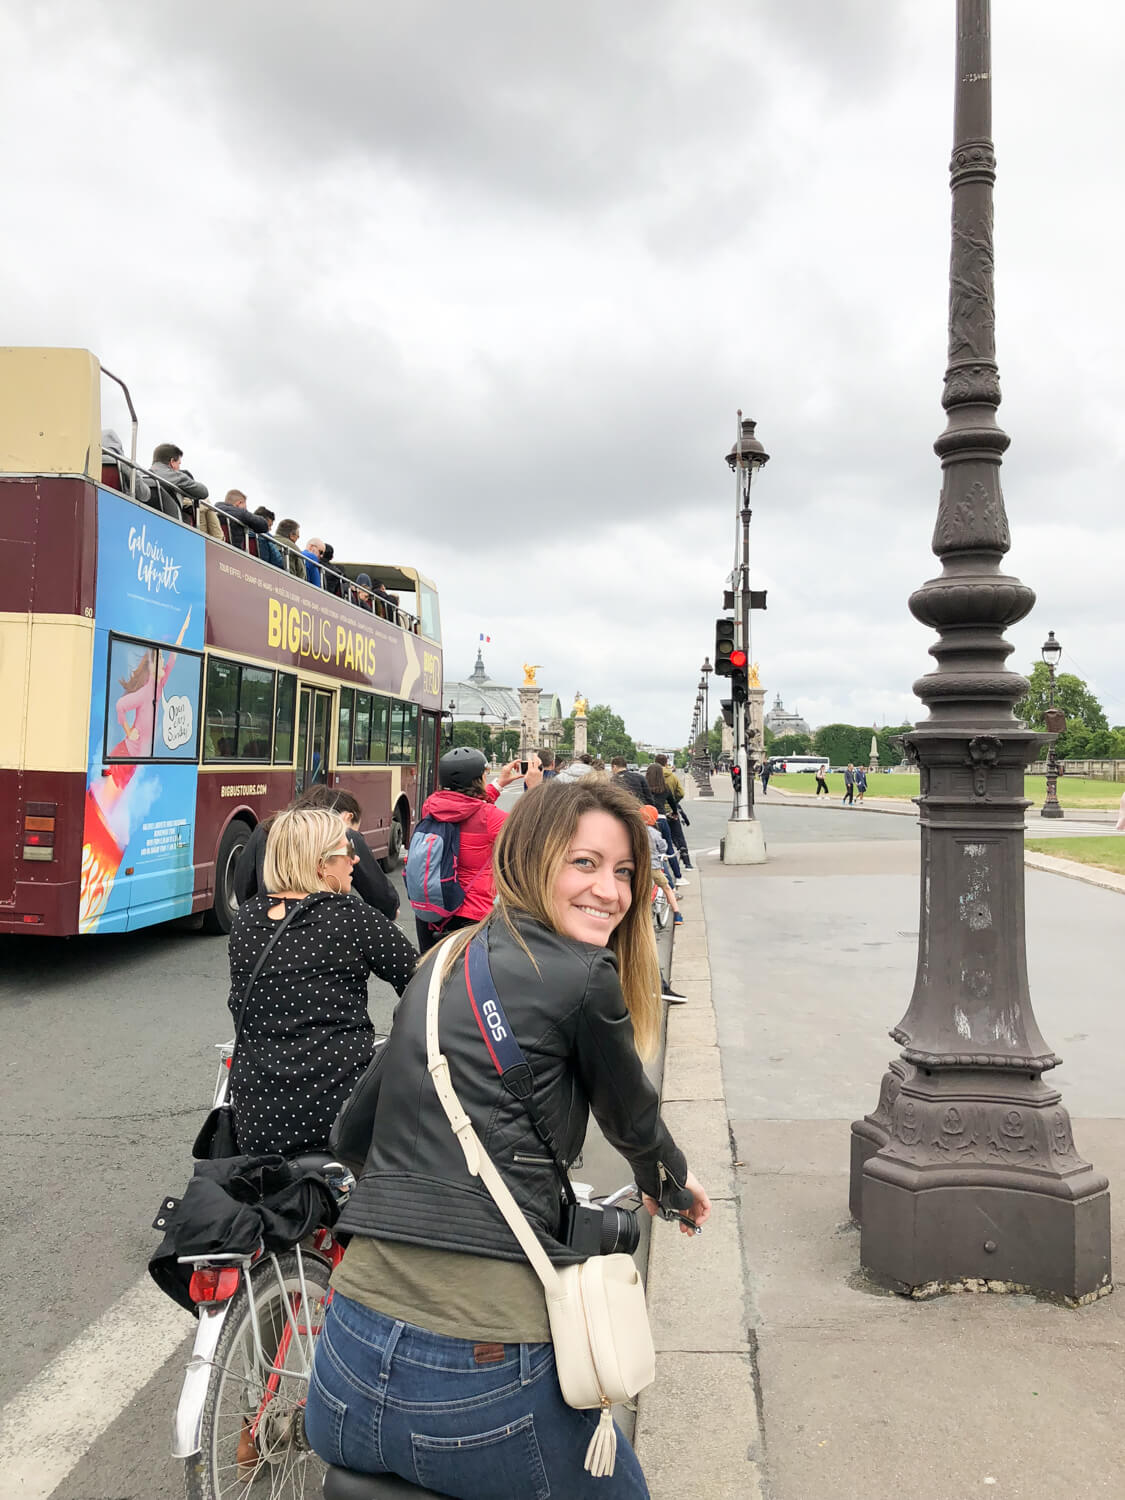 The perfect 5-day Paris itinerary - Fat Tire Bike tour